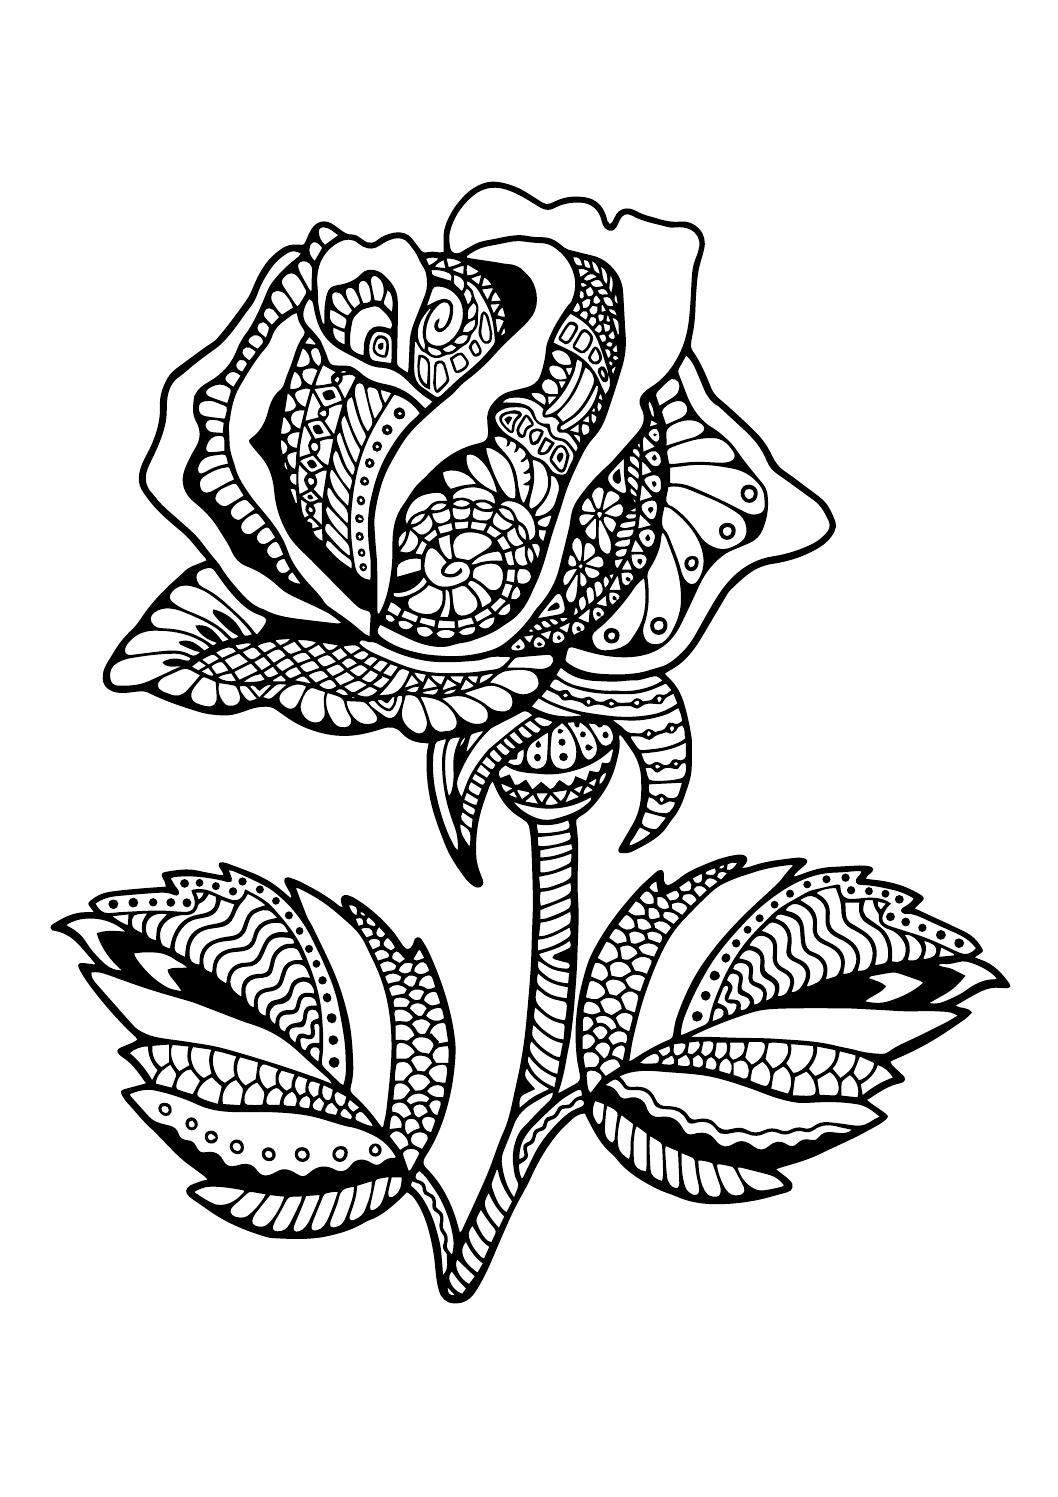 Pin By Fleur Feyaerts On Coloring Floral Coloring Pages Steampunk Coloring Flower Coloring Pages